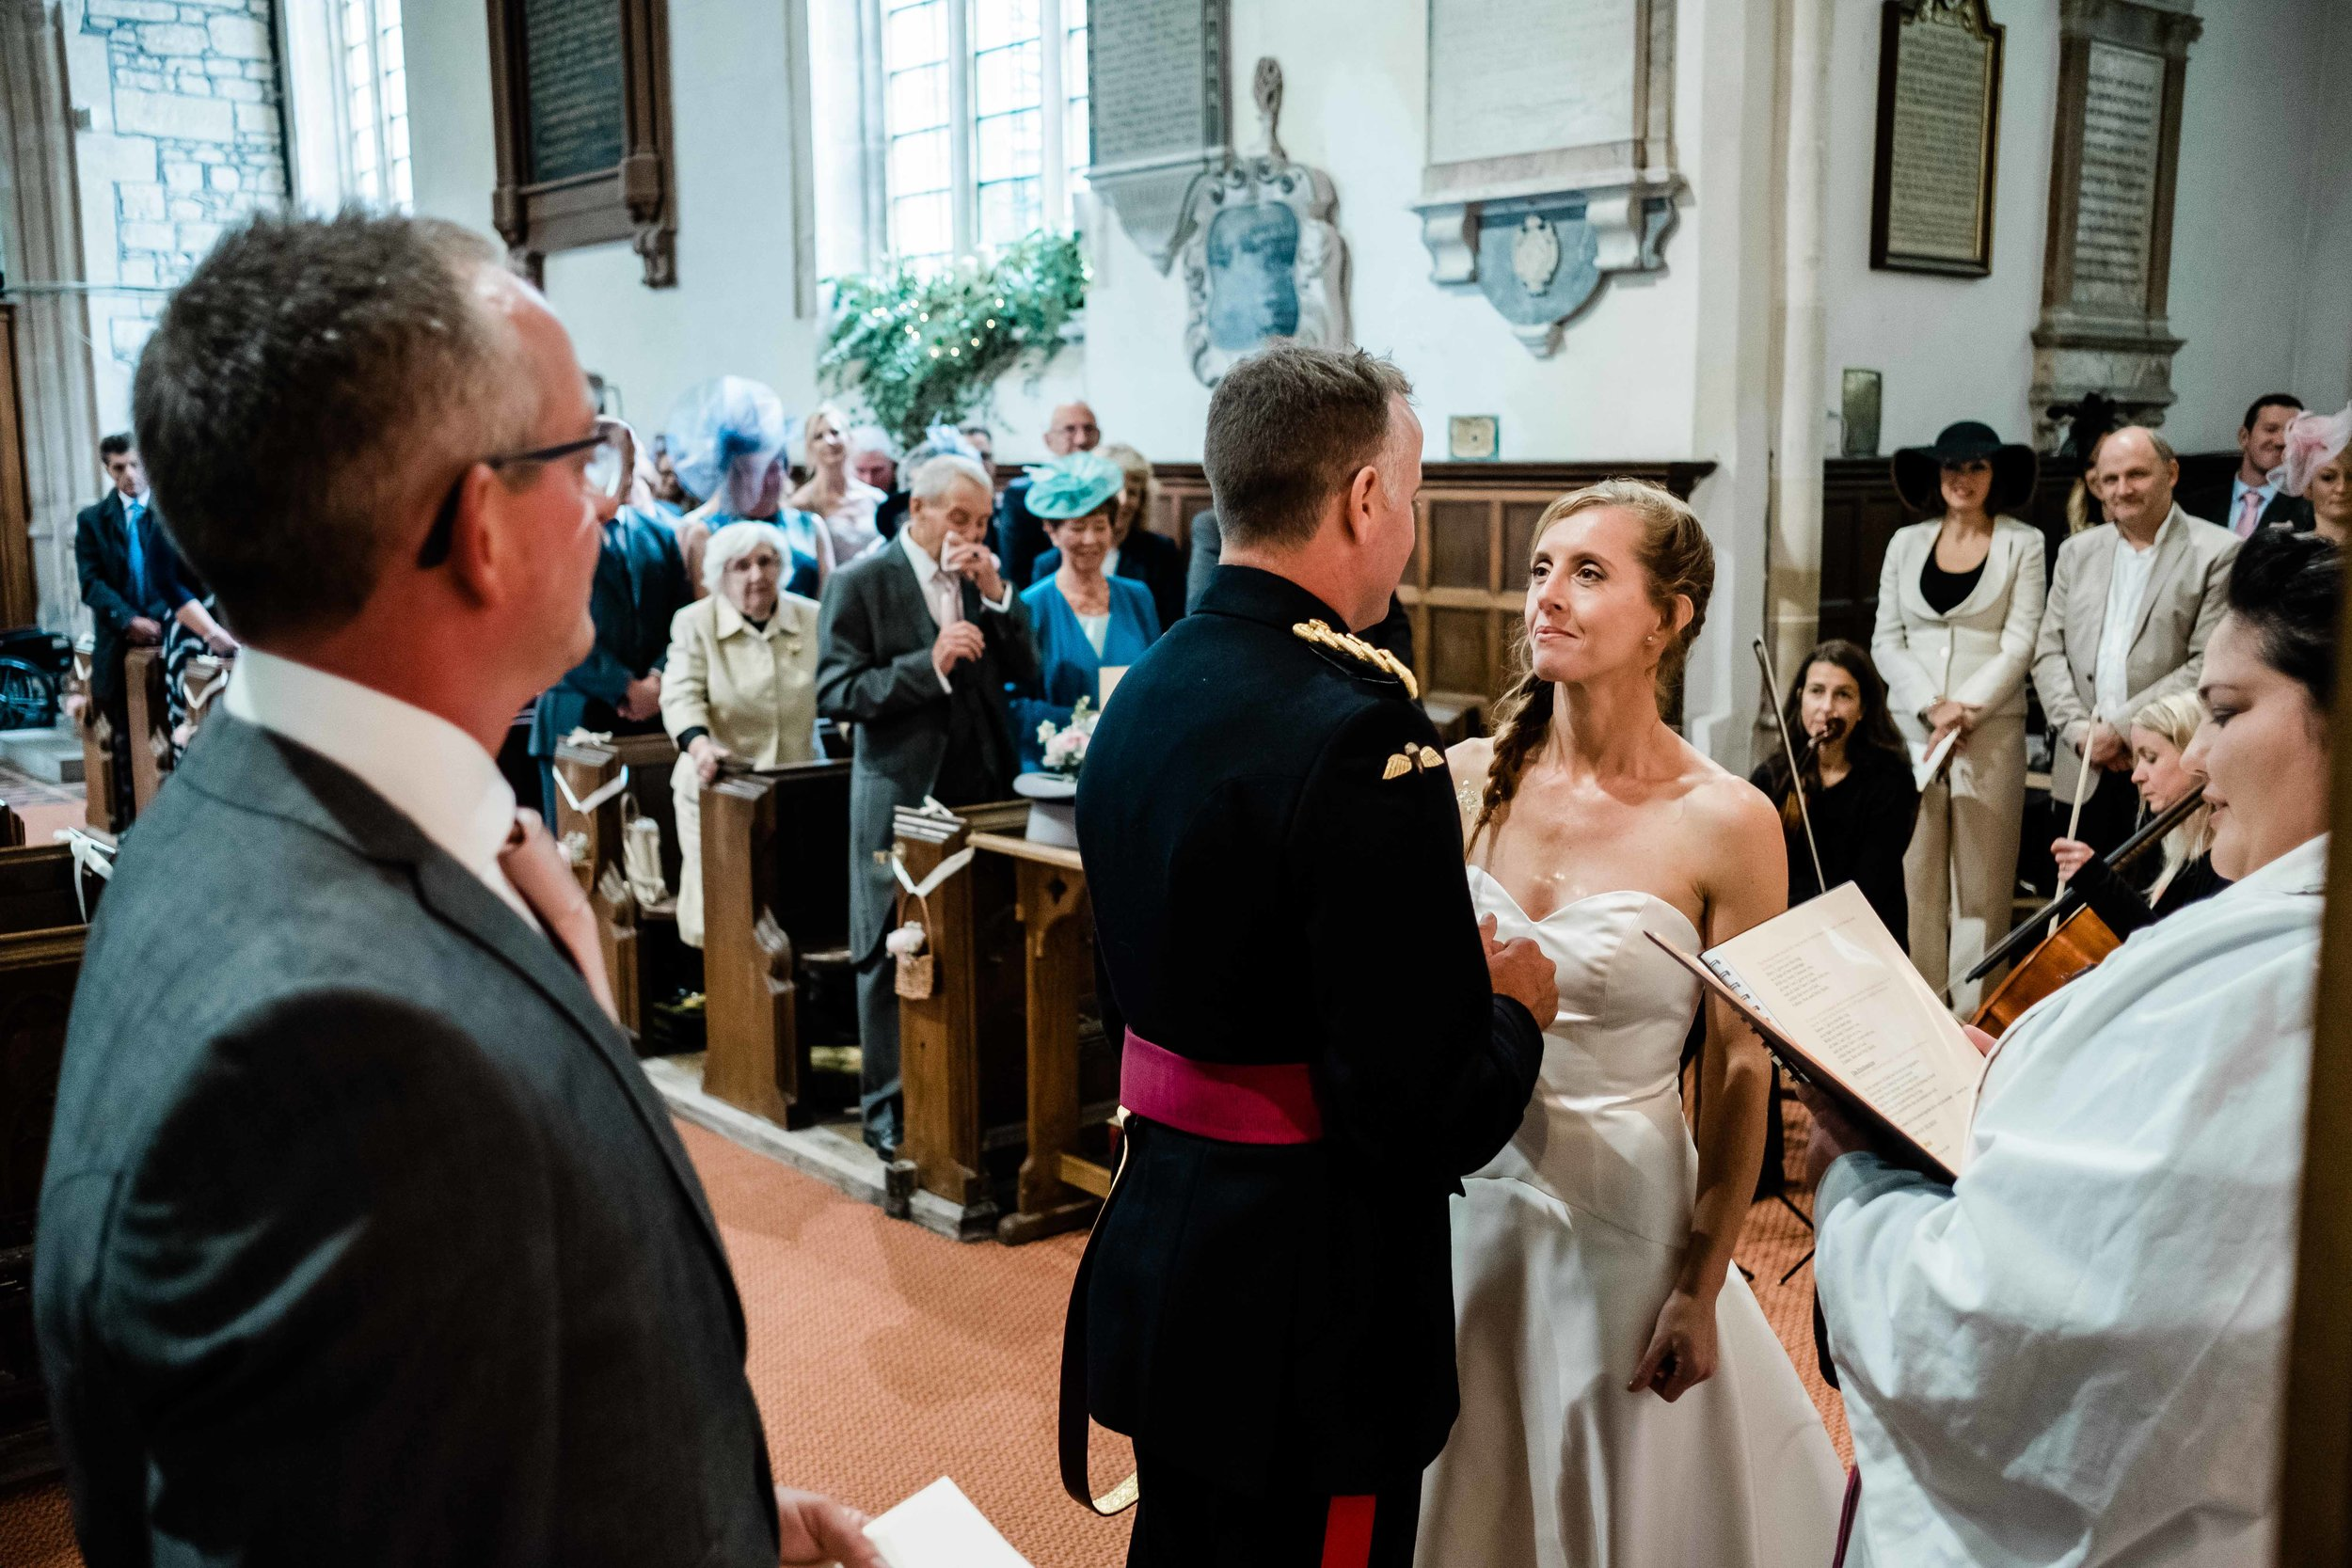 Salisbury wedding photography (44 of 250).jpg